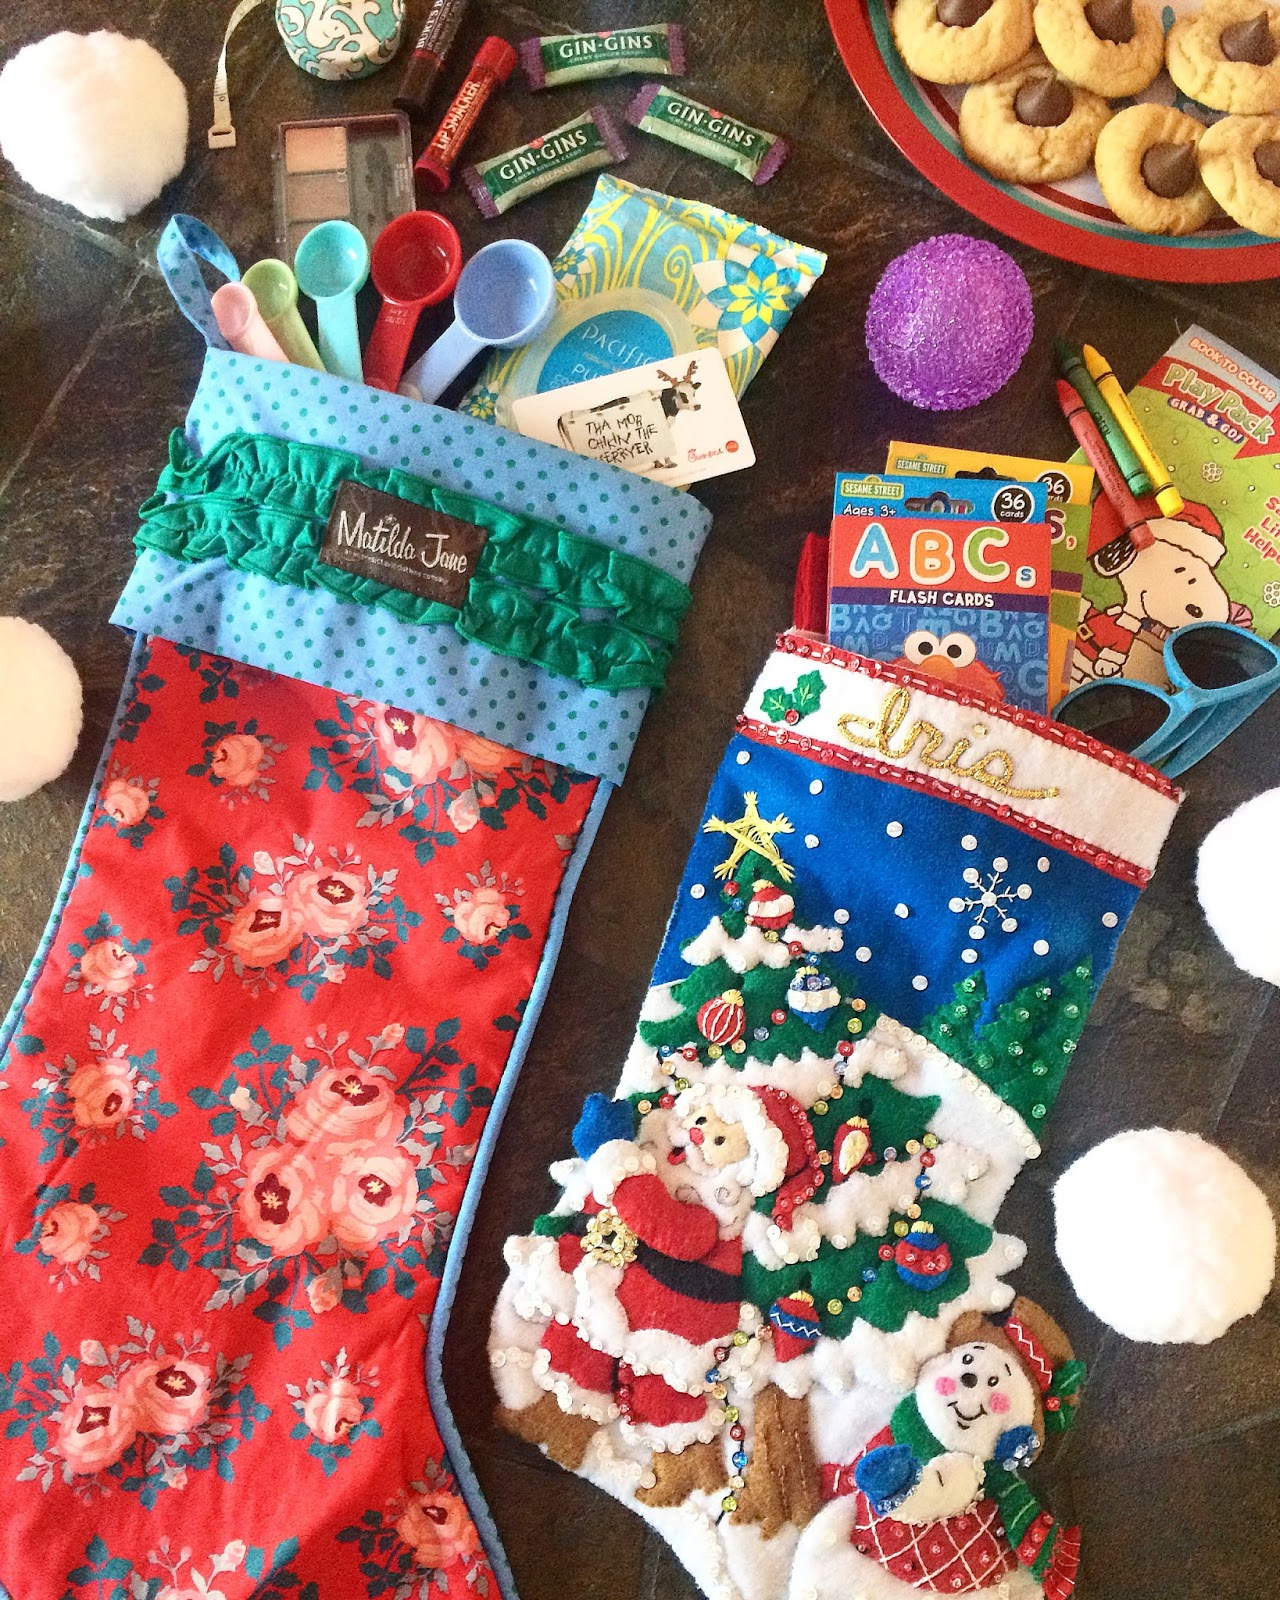 Filling And Opening Christmas Stockings Might Be One Of My Favorite Holiday  Traditions. They Definitely Stand Out Because While I Always Made A Wish  List ...